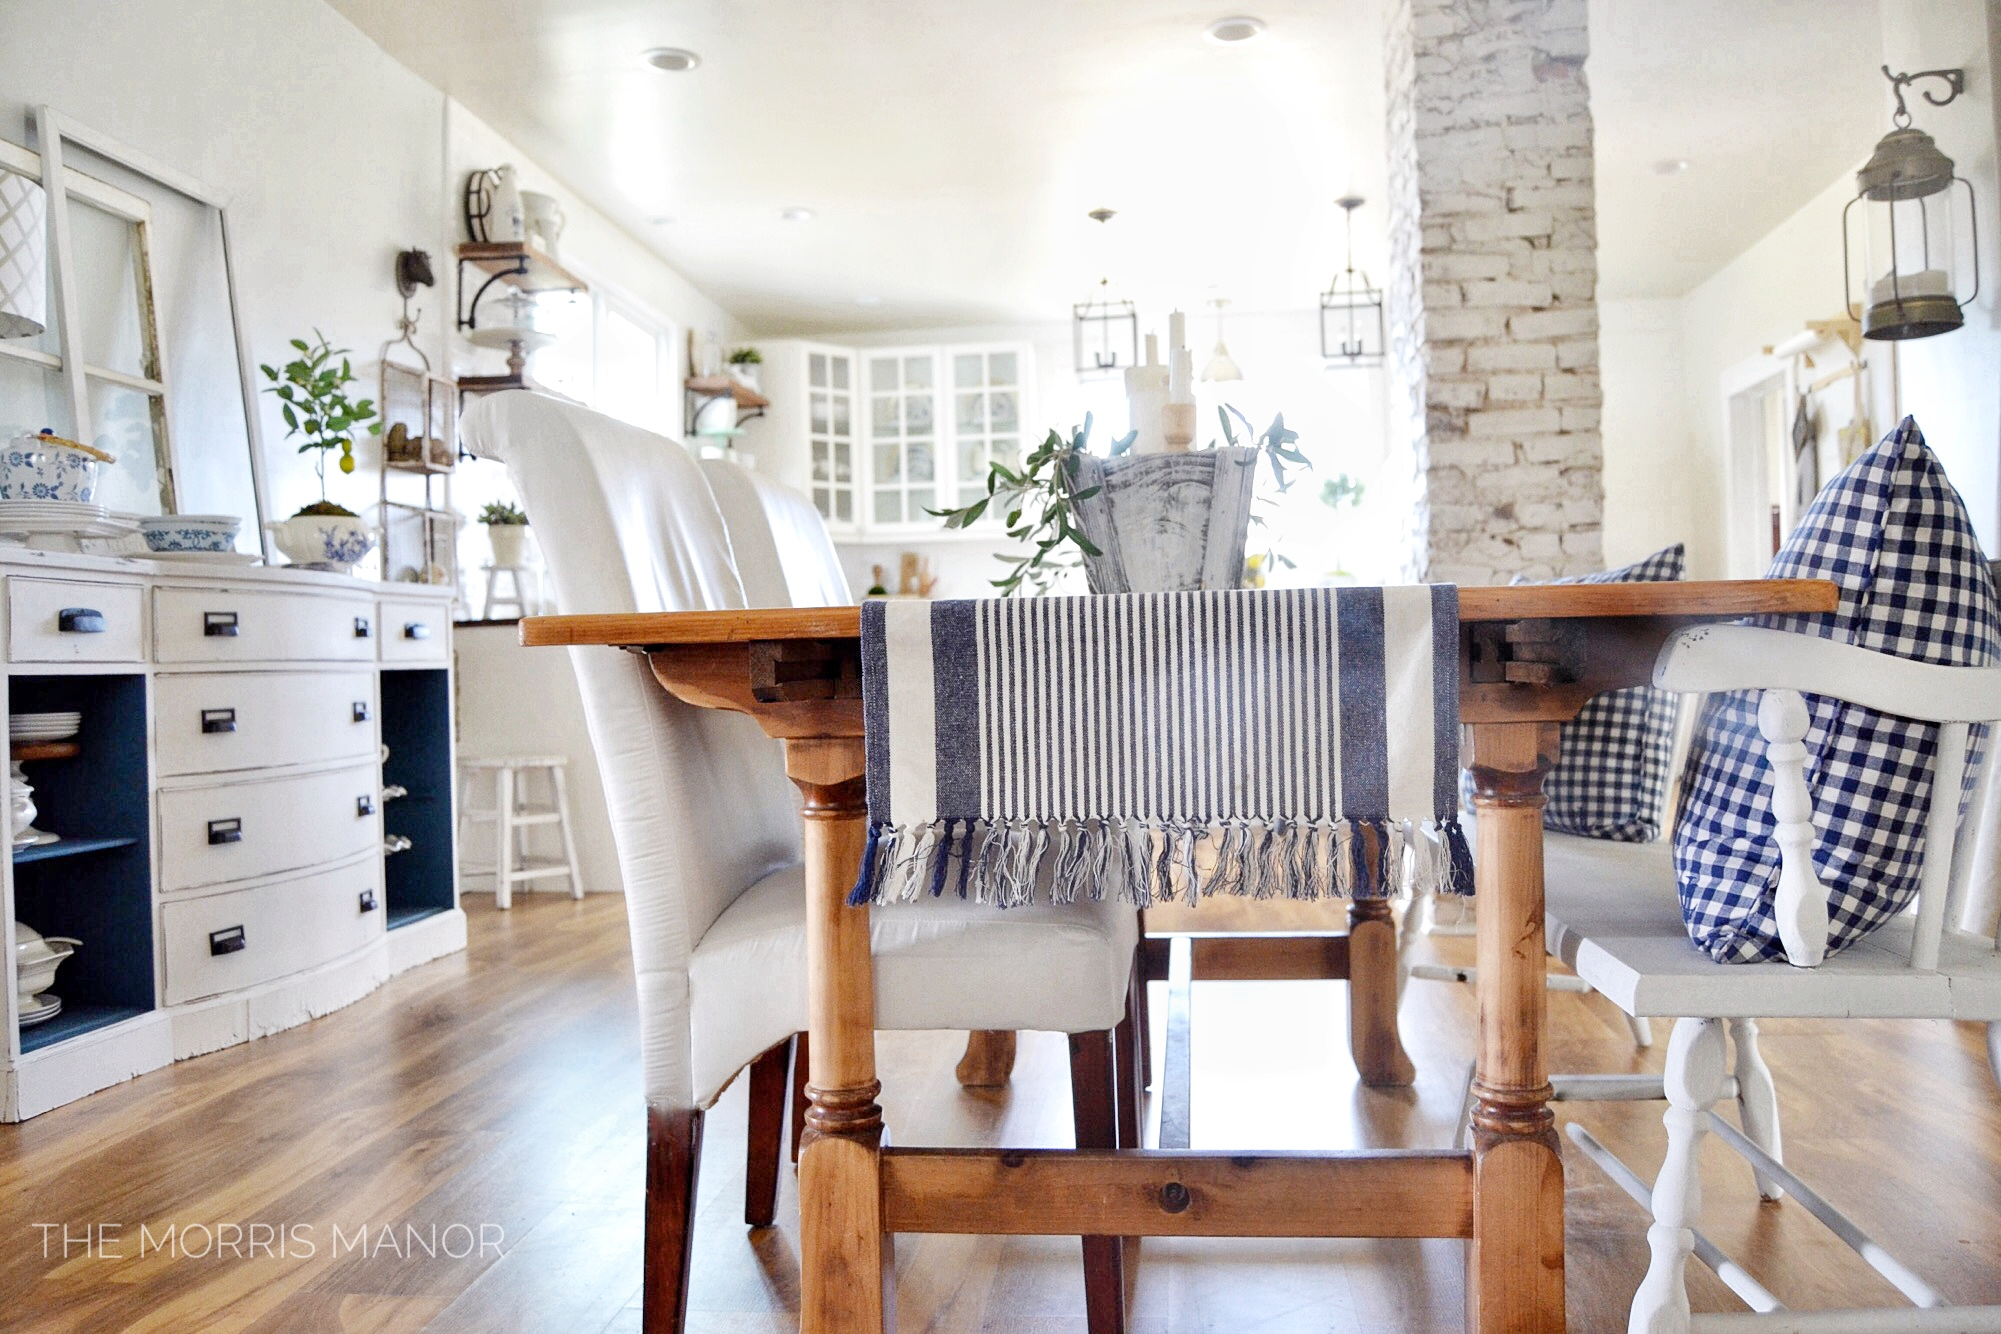 The Morris Manor Farmhouse Home Tour - Family Great Room - Vintage farm table dining room, kitchen, exposed brick